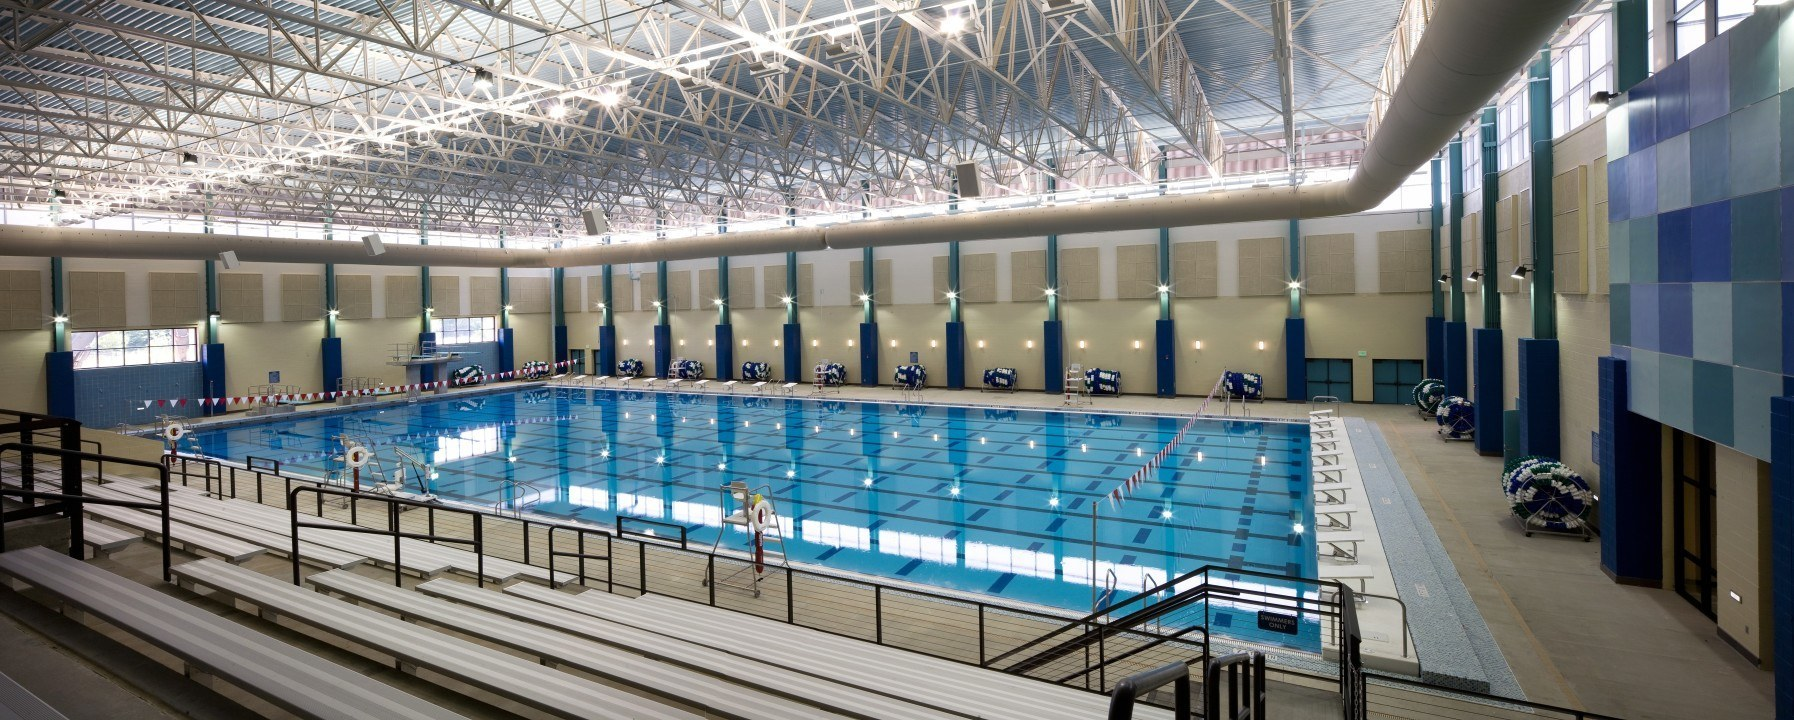 The modern competition pool - University of birmingham swimming pool ...